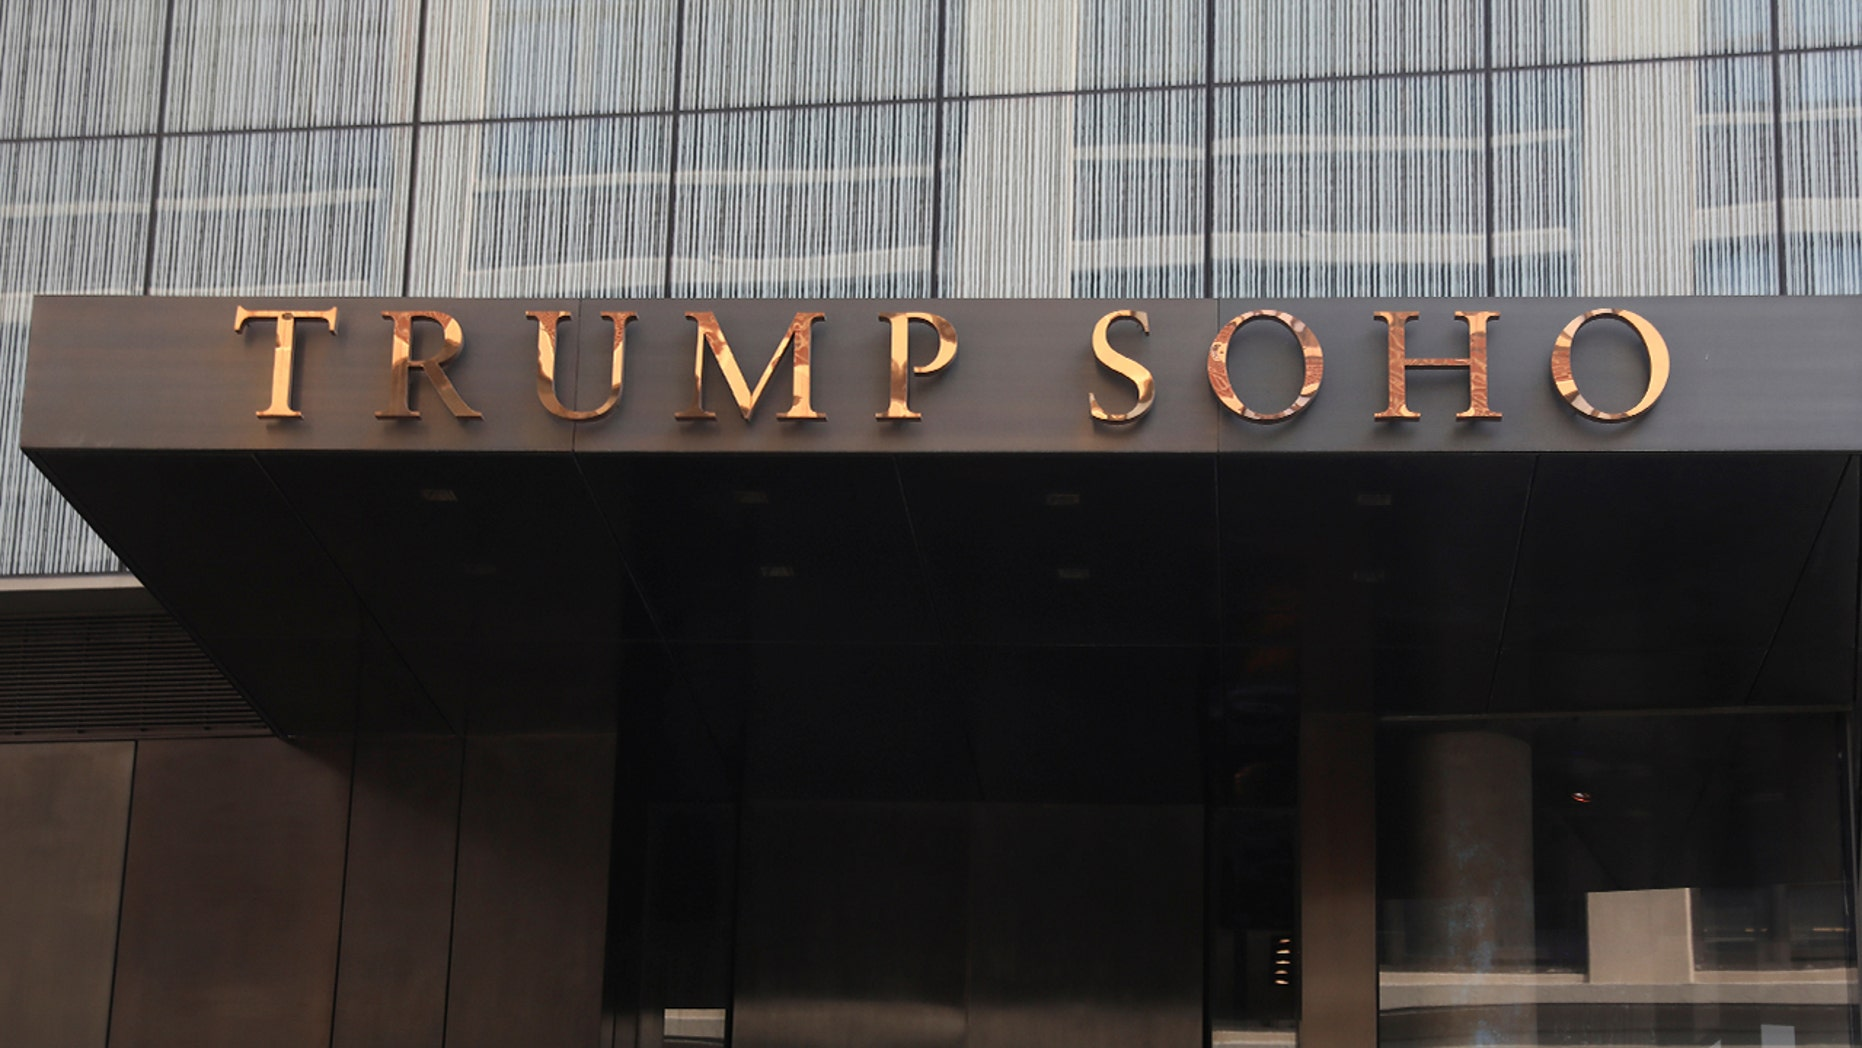 It will now be known as the Dominick Soho Hotel and Spa.